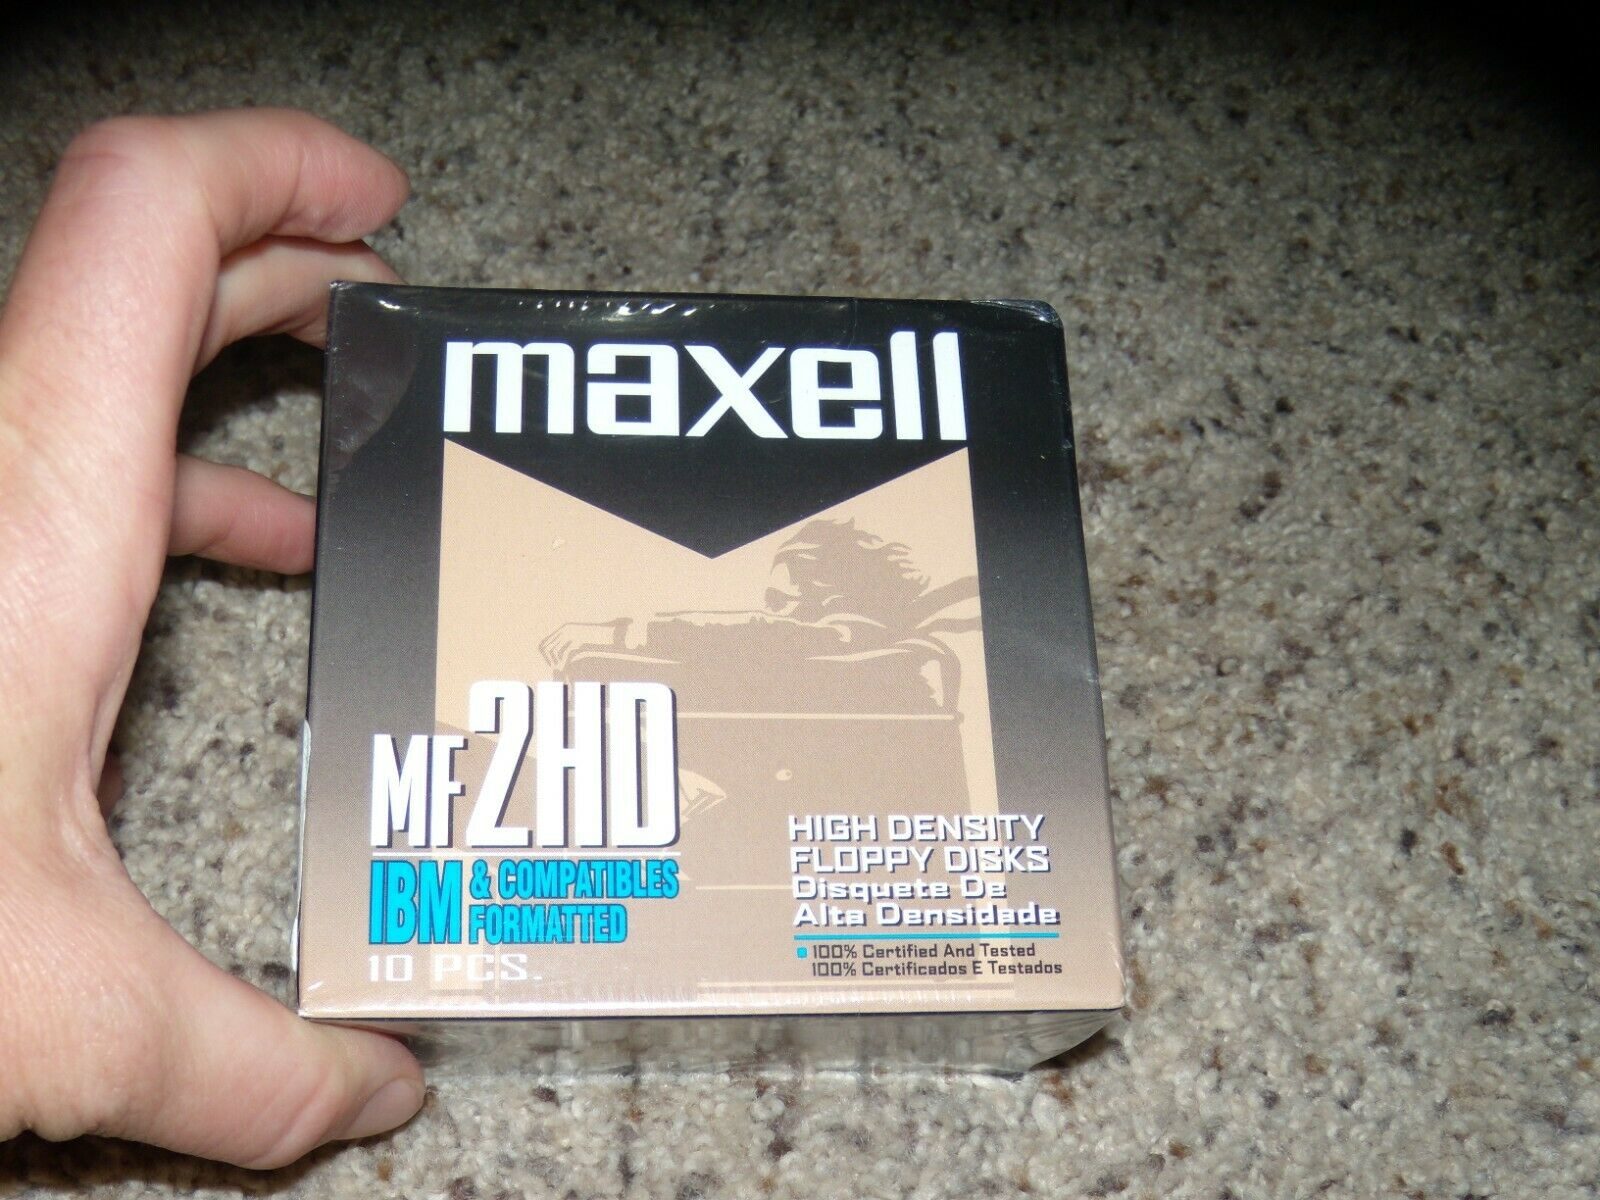 Lot Of 10 IBM Maxell High Density Floppy Disks New And Sealed - $8.99